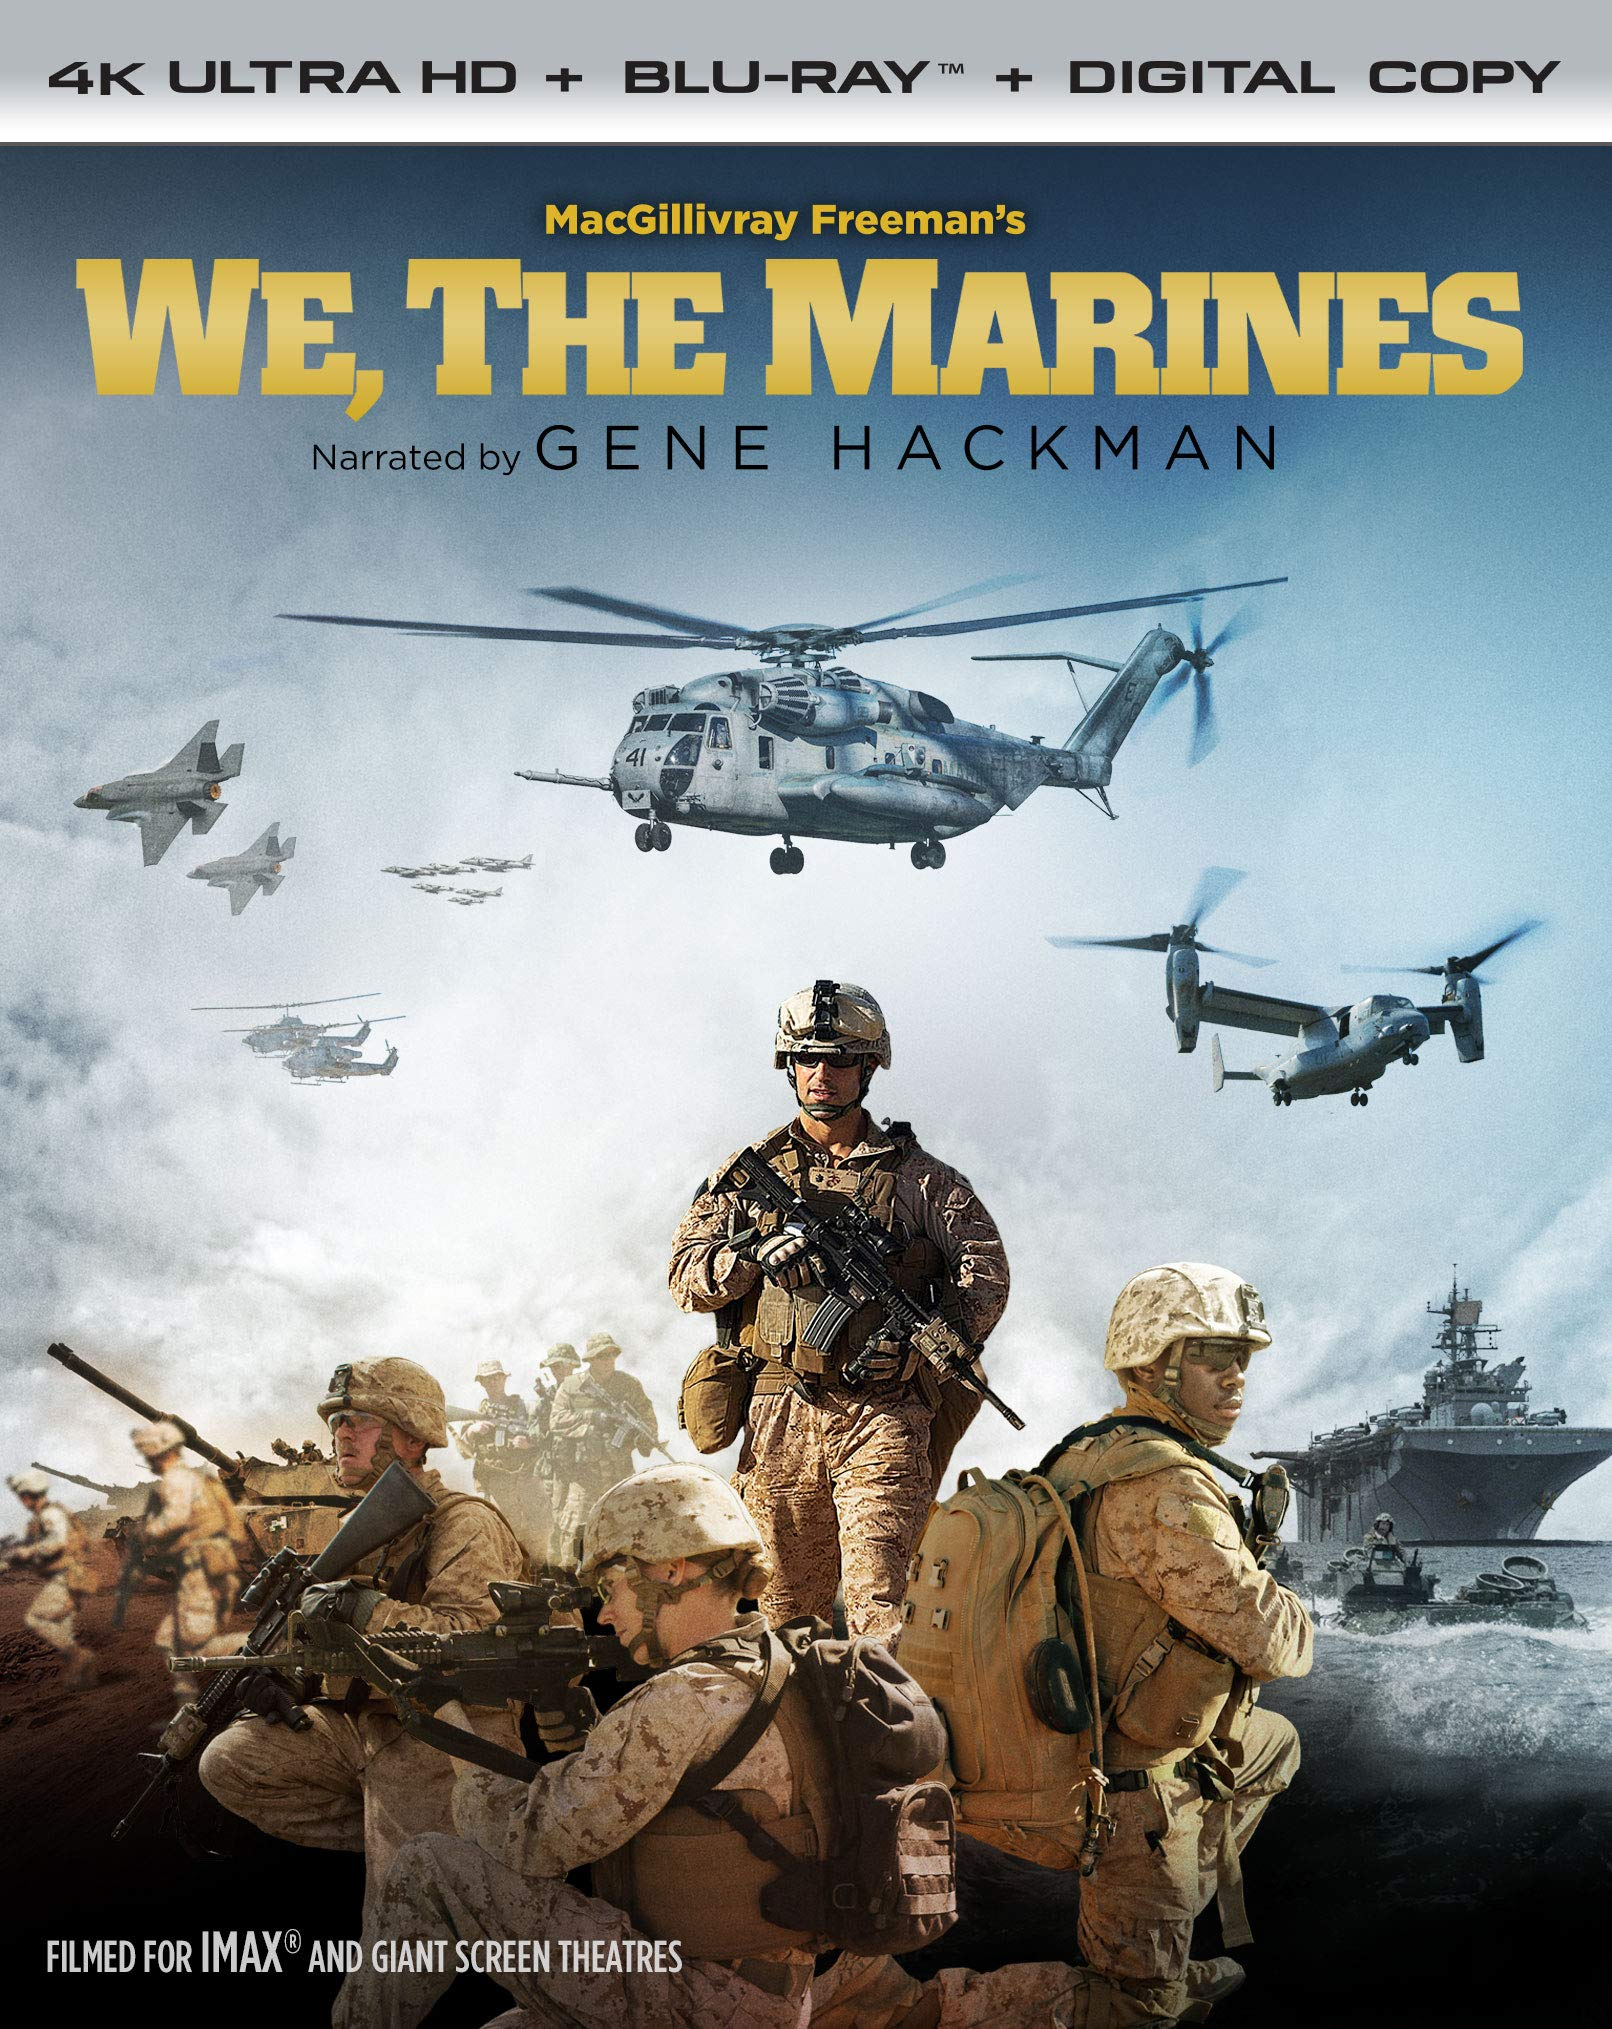 4K Blu-ray : We, The Marines (With Blu-ray, 4K Mastering, Widescreen, 2 Pack)